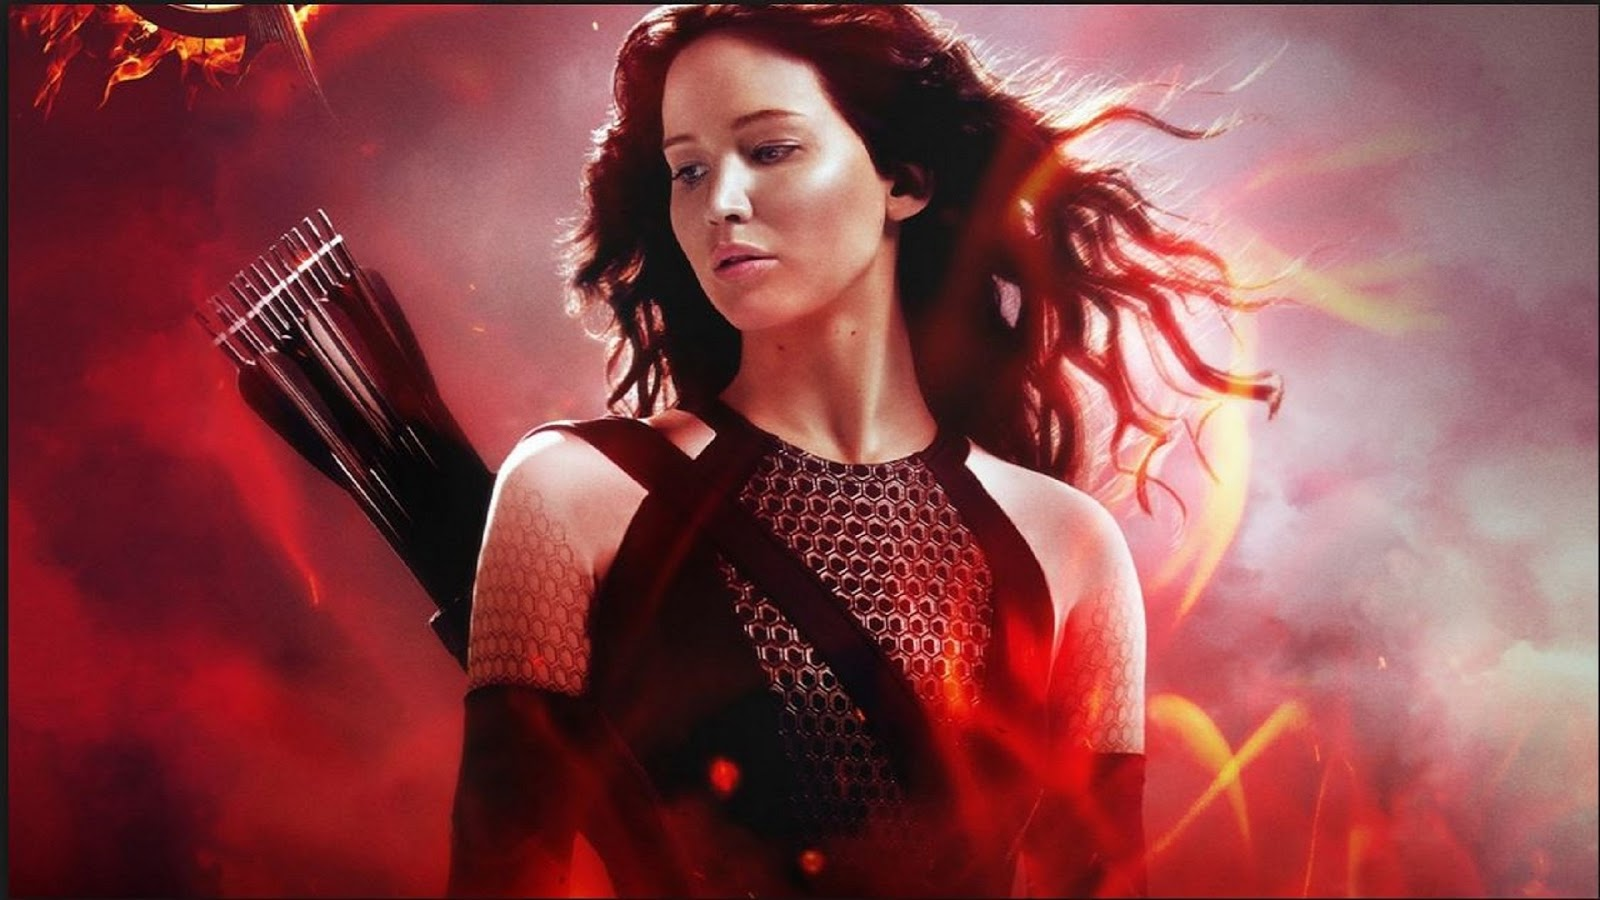 Movie The Hunger Games: Mockingjay - Part 2 (2015)